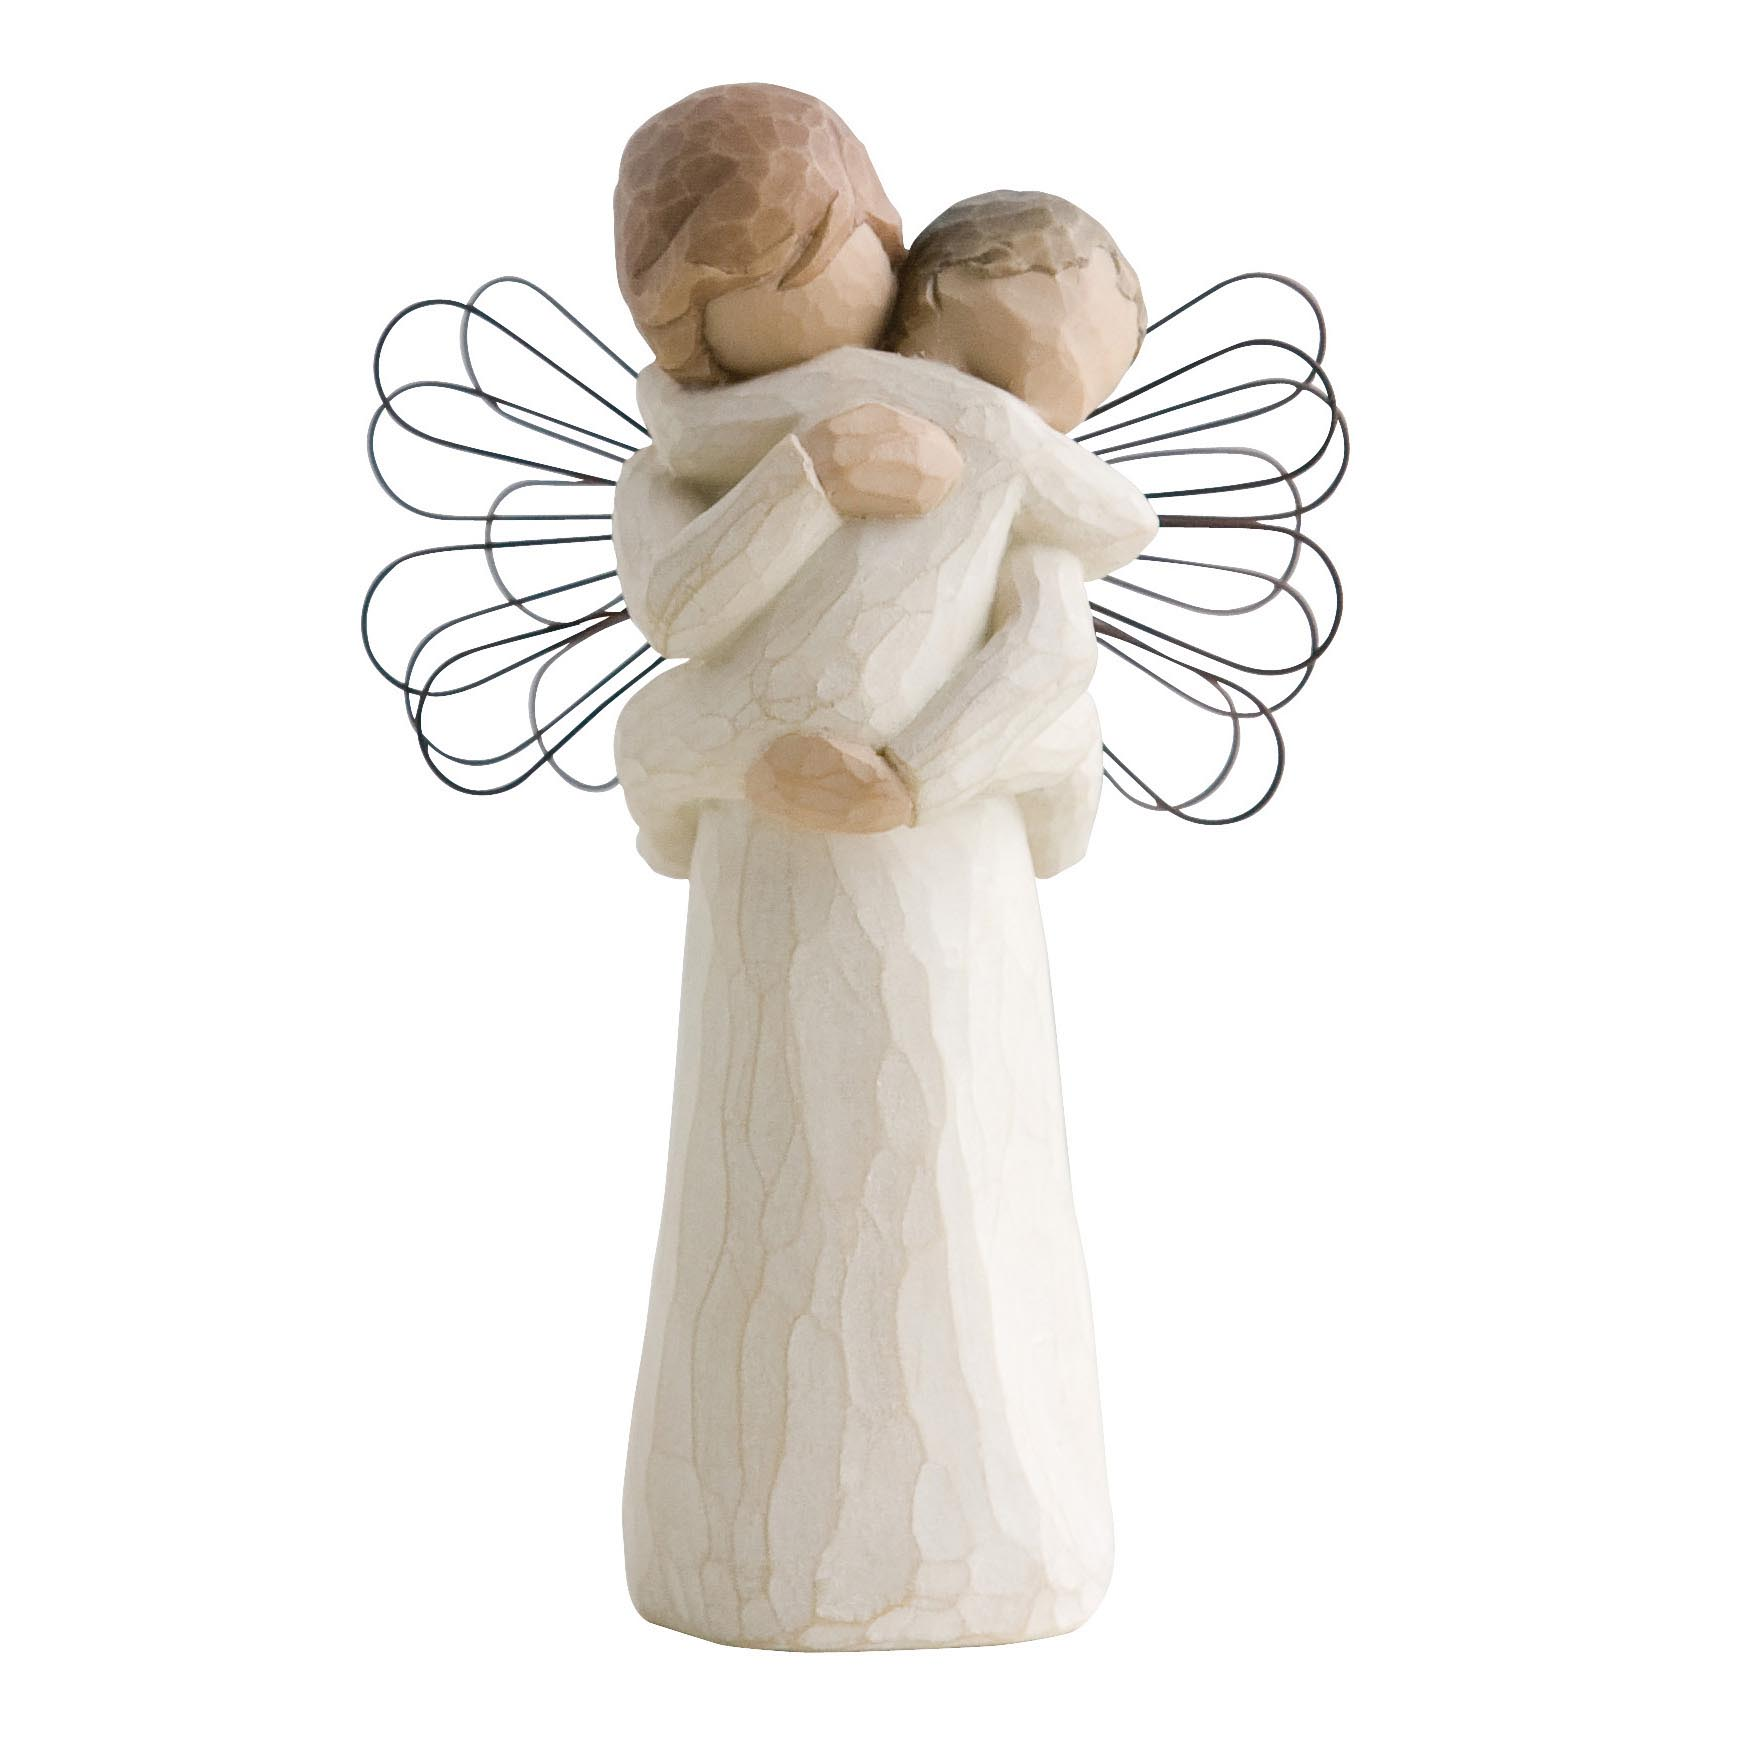 Angel's Embrace / Umarmung (26084)